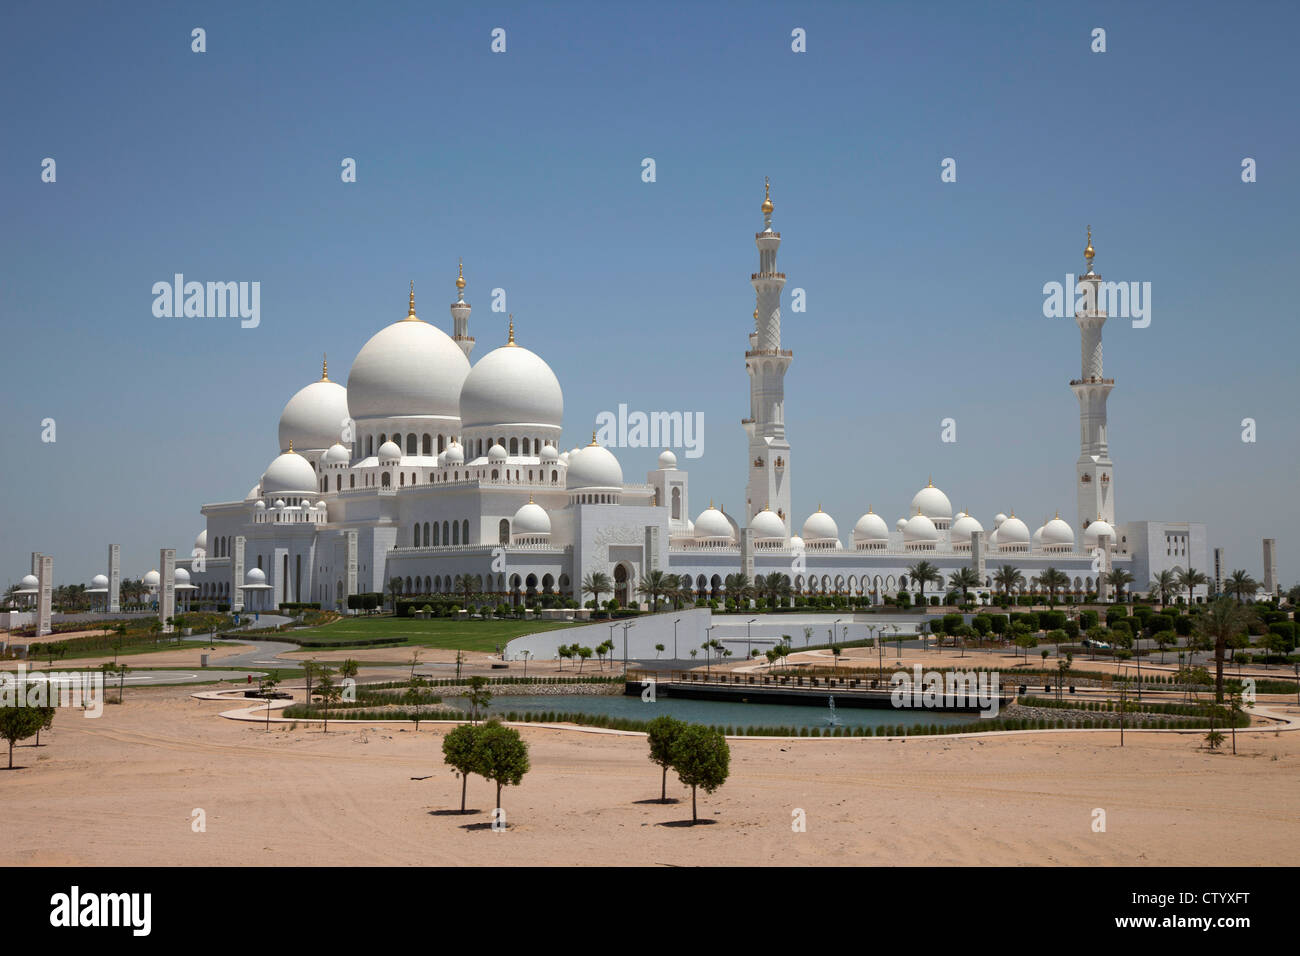 Grand Mosque with domes and towers - Stock Image